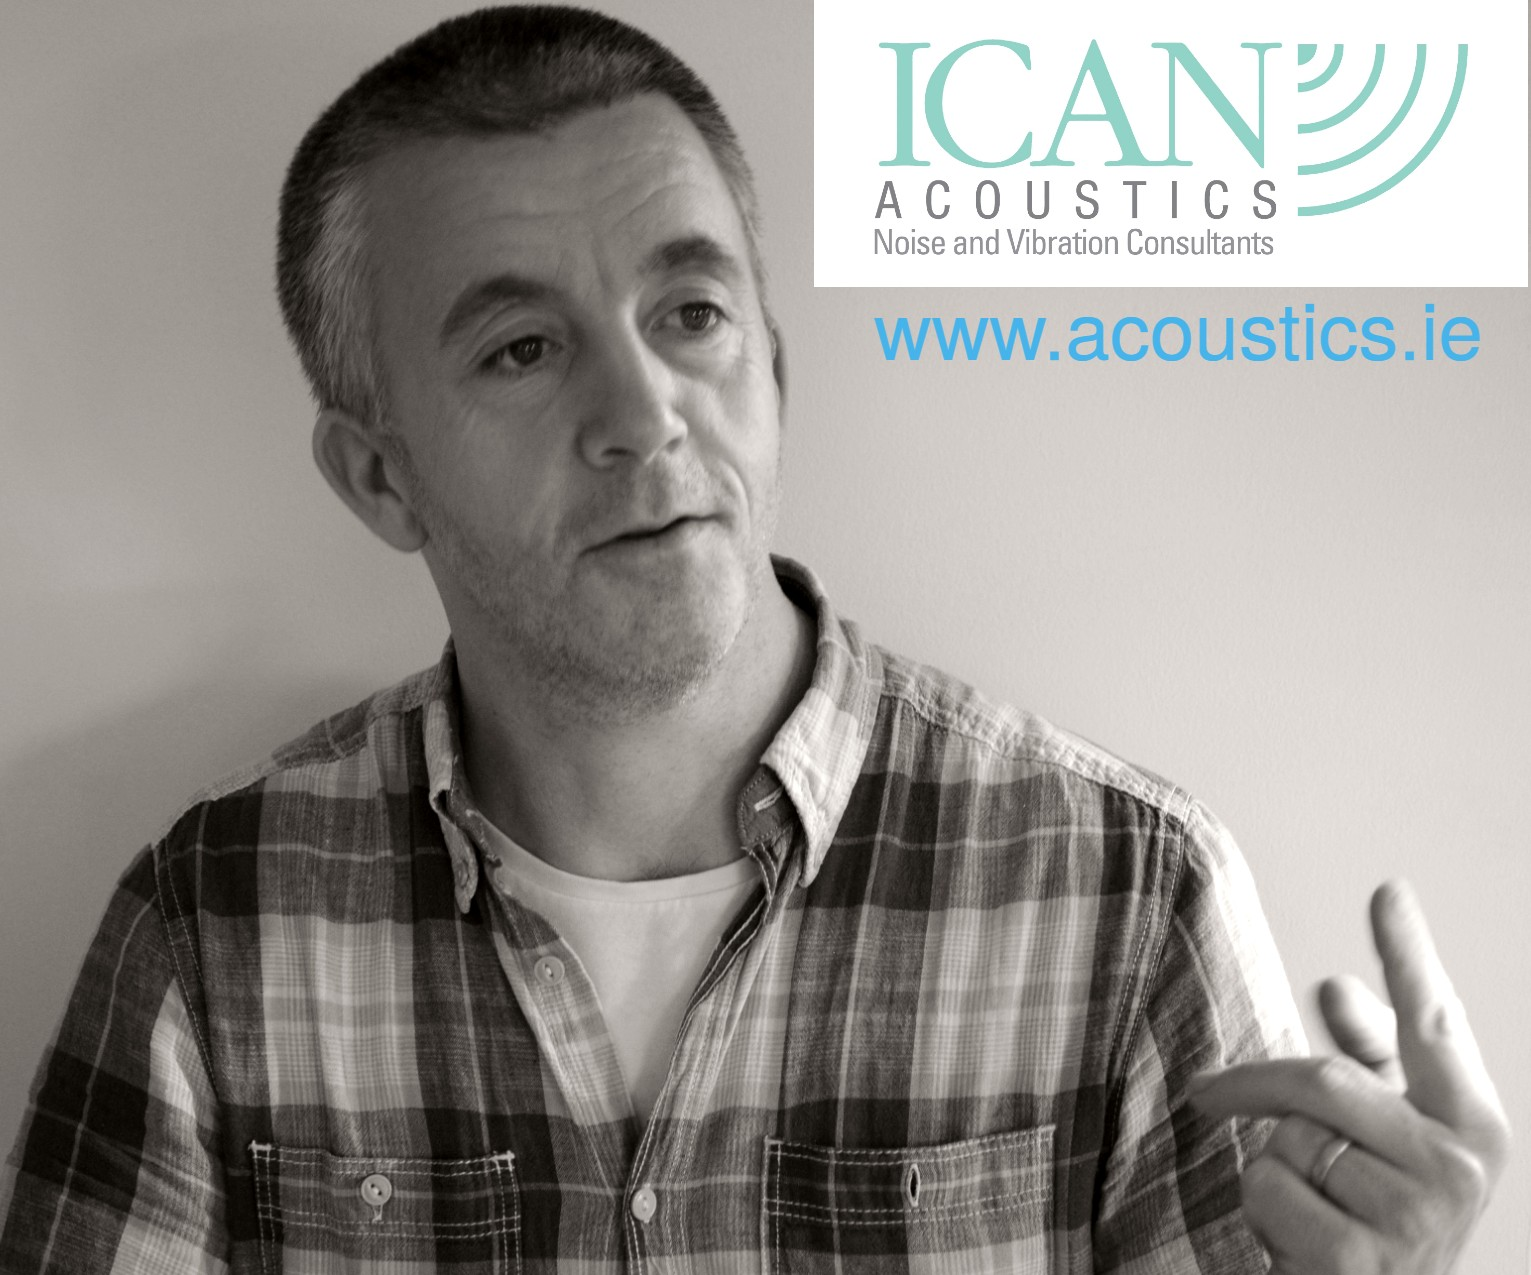 Diarmuid Keaney ICAN Acoustics